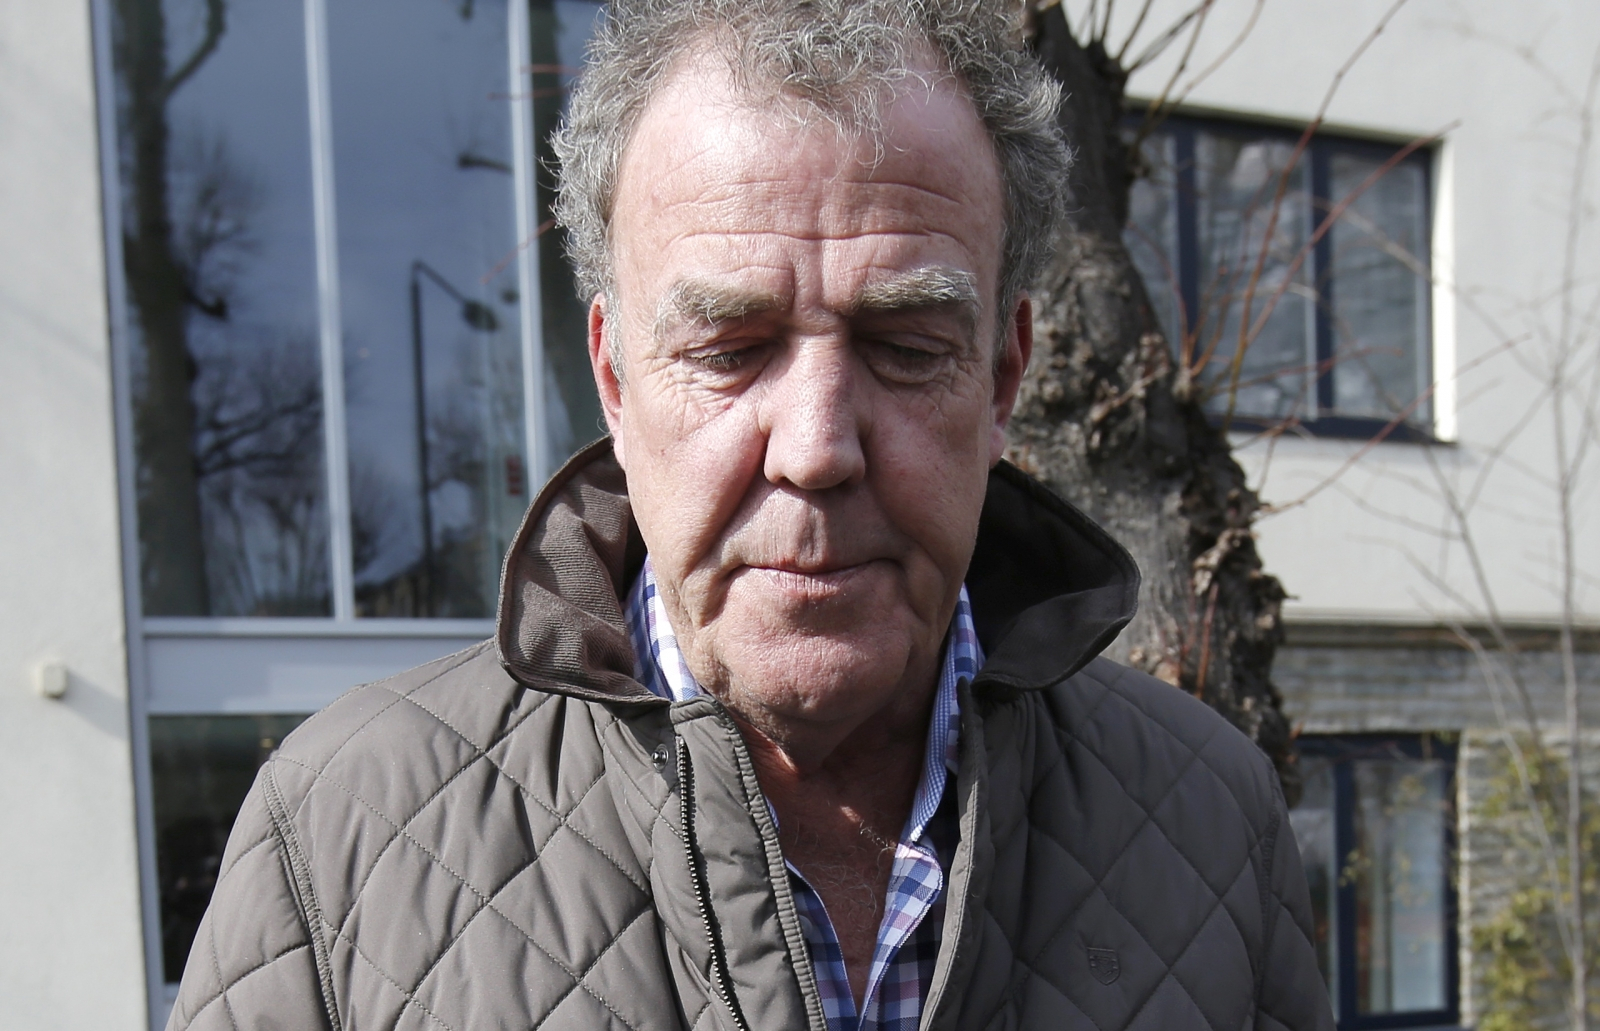 Jeremy Clarkson threatens to sue